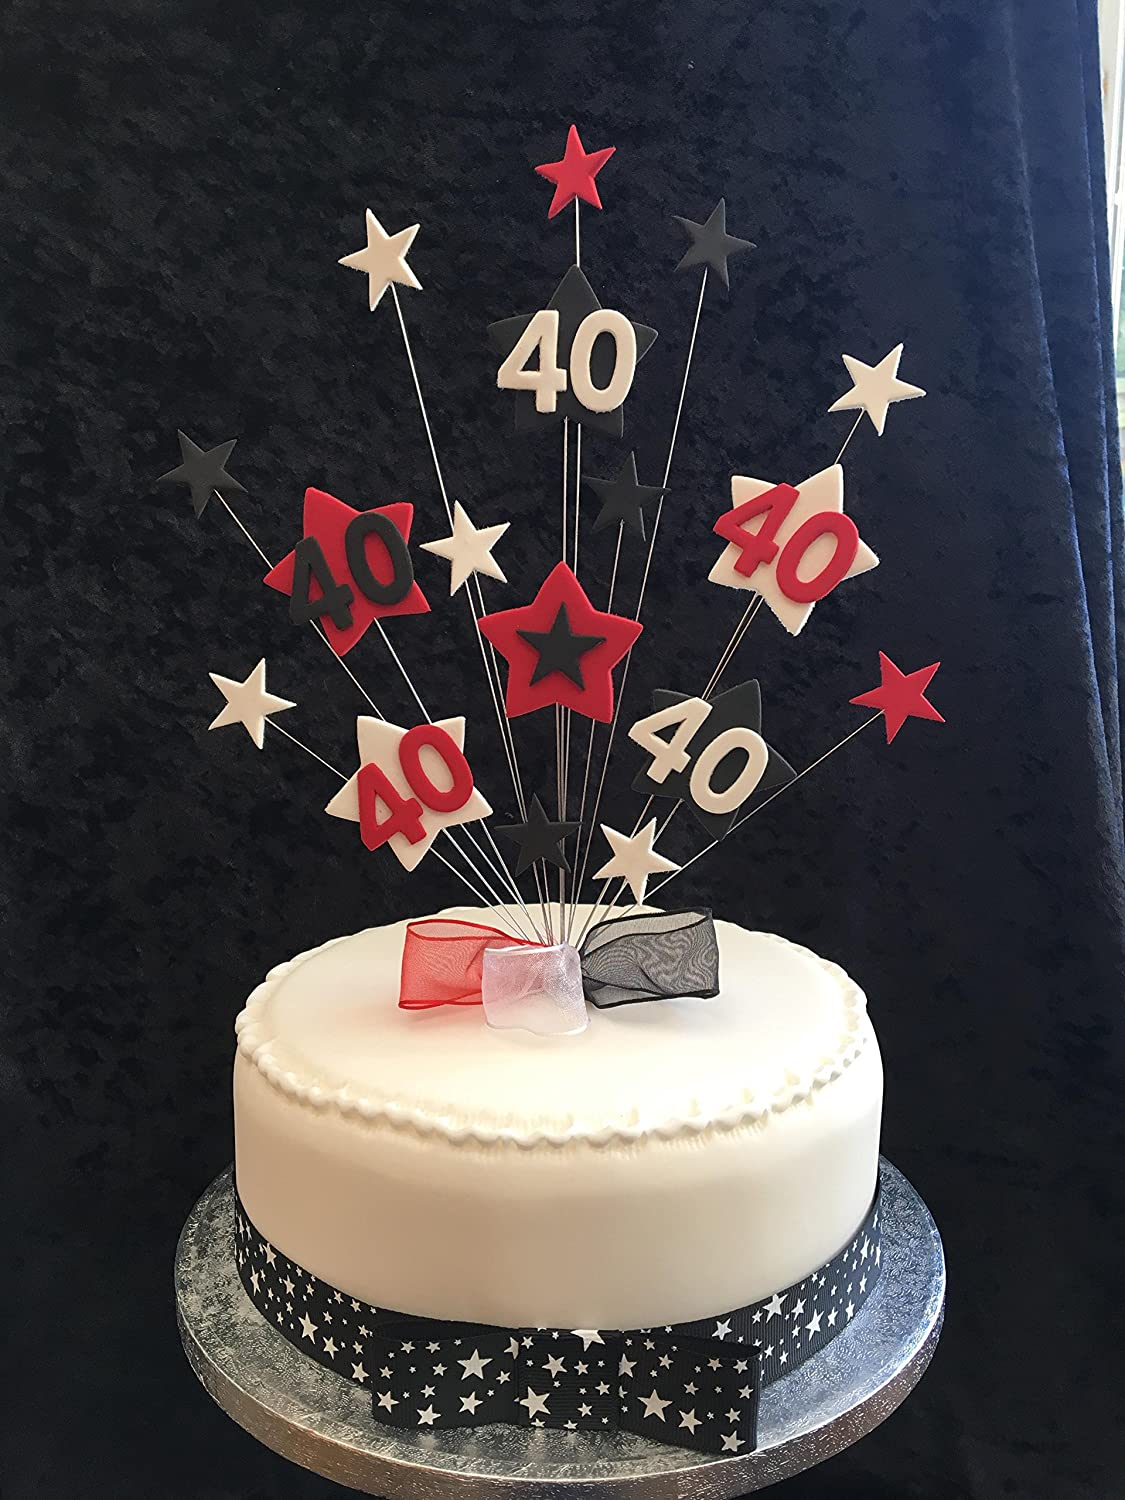 Awe Inspiring 40Th Birthday Cake Topper Red Black And White Stars Plus 1 X Funny Birthday Cards Online Inifodamsfinfo